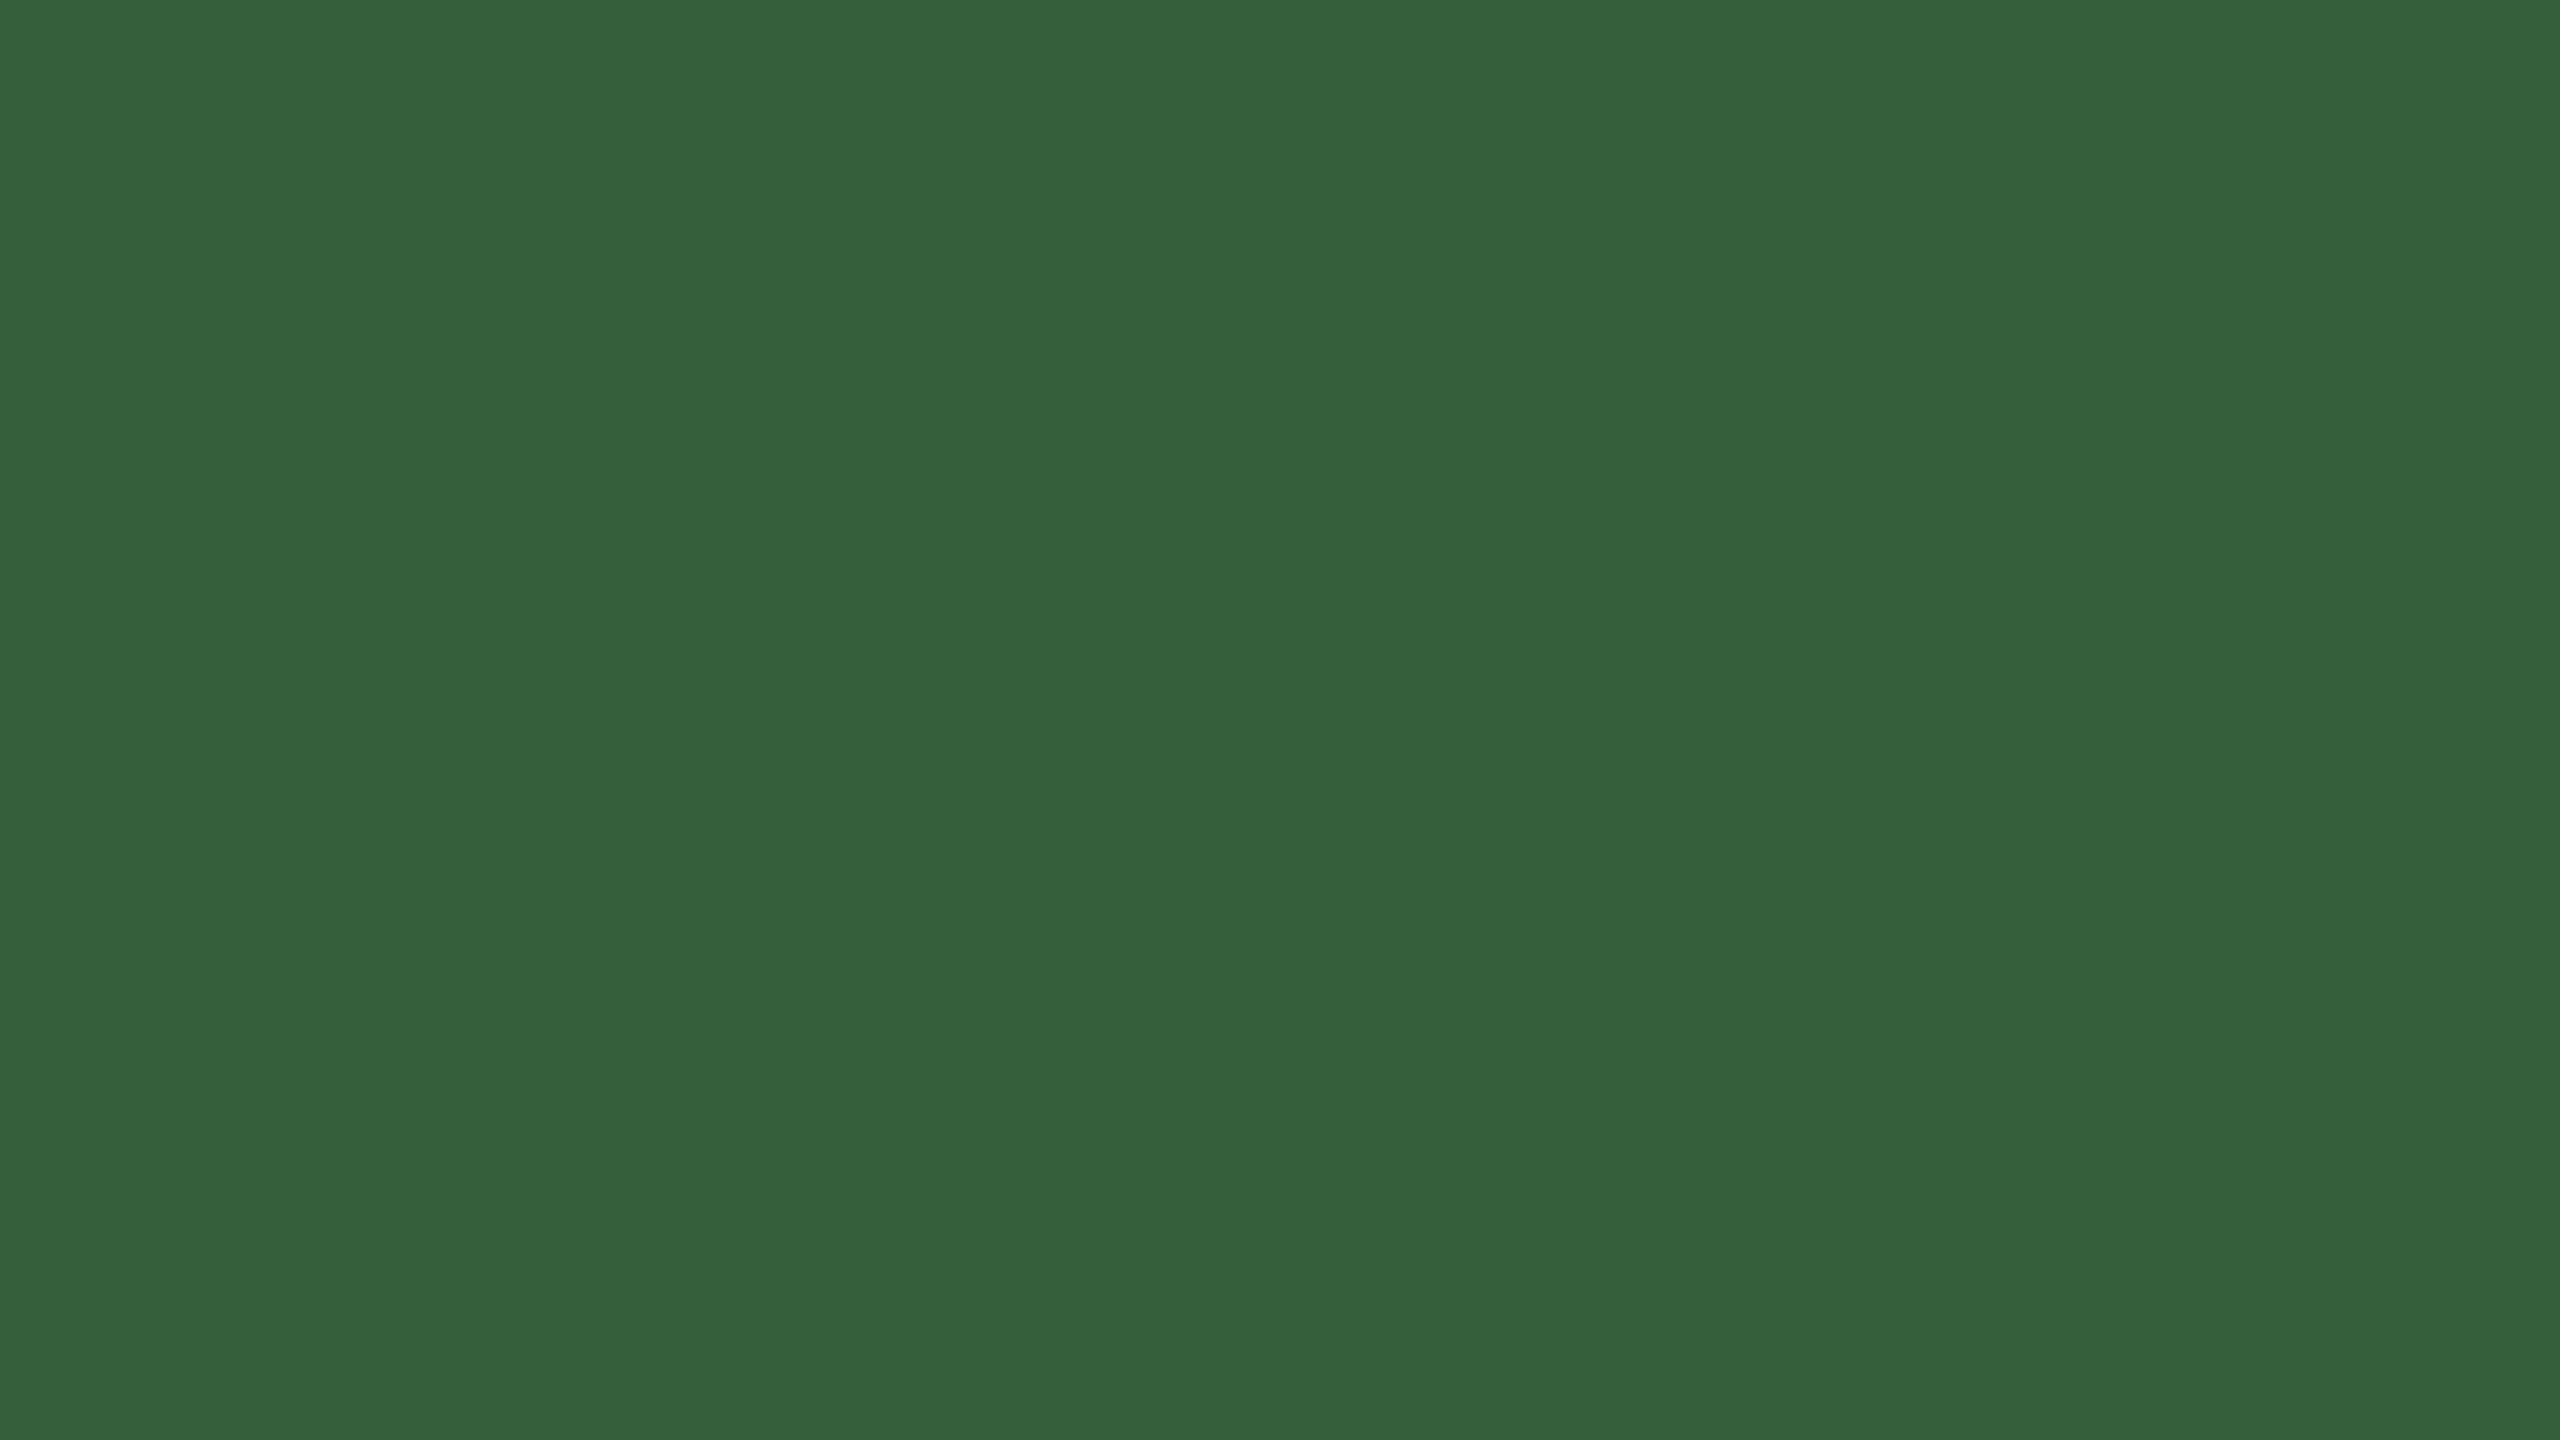 Privacy Policy >> 2560x1440 Hunter Green Solid Color Background